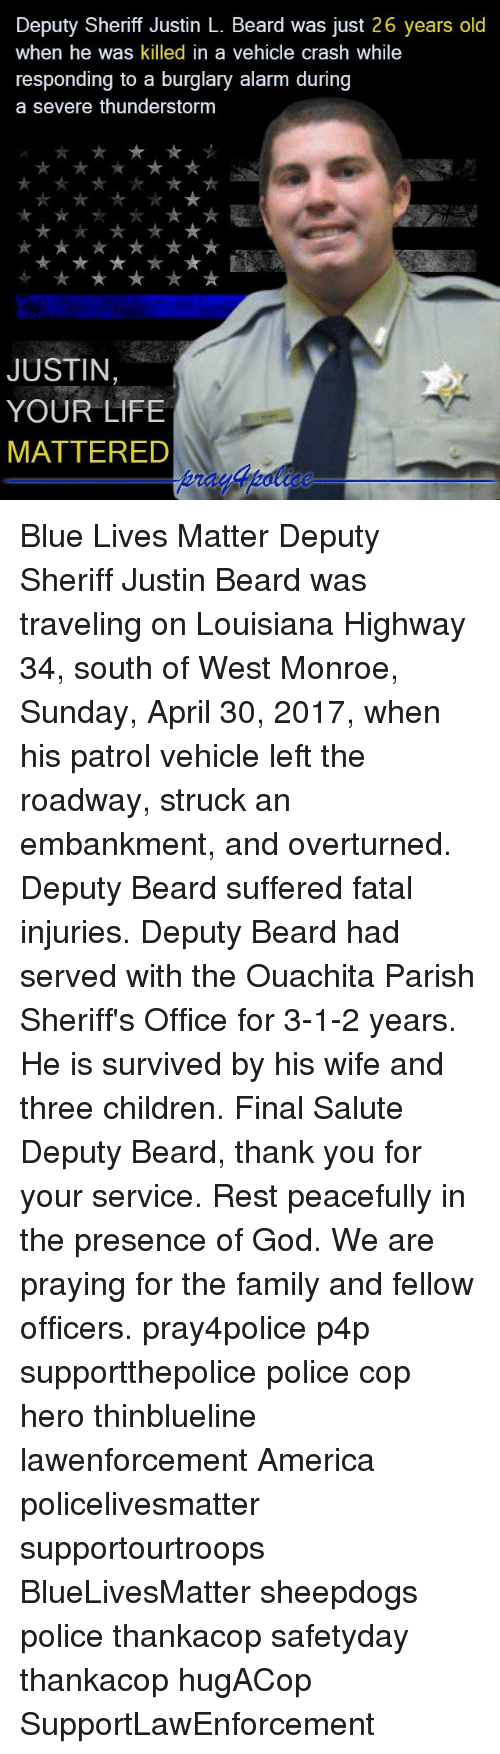 Thunderstorming: Deputy Sheriff Justin L. Beard was just 26 years old  when he was killed in a vehicle  crash While  responding to a burglary alarm during  a severe thunderstorm  JUSTIN,  YOUR LIFE  MATTERED Blue Lives Matter Deputy Sheriff Justin Beard was traveling on Louisiana Highway 34, south of West Monroe, Sunday, April 30, 2017, when his patrol vehicle left the roadway, struck an embankment, and overturned. Deputy Beard suffered fatal injuries. Deputy Beard had served with the Ouachita Parish Sheriff's Office for 3-1-2 years. He is survived by his wife and three children. Final Salute Deputy Beard, thank you for your service. Rest peacefully in the presence of God. We are praying for the family and fellow officers. pray4police p4p supportthepolice police cop hero thinblueline lawenforcement America policelivesmatter supportourtroops BlueLivesMatter sheepdogs police thankacop safetyday thankacop hugACop SupportLawEnforcement